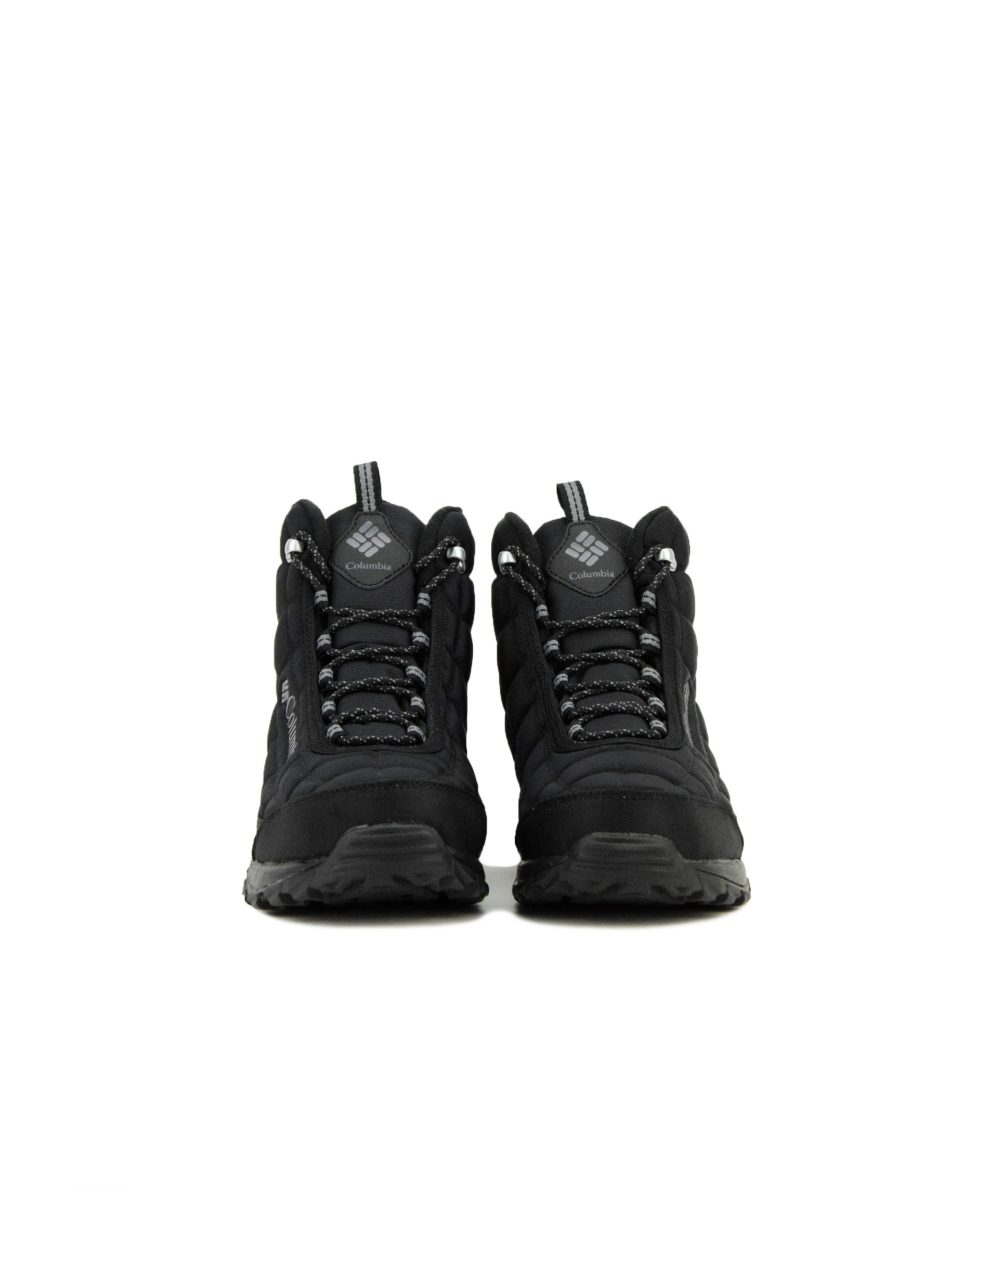 Columbia Firecamp Boot (BM1766-012) Black